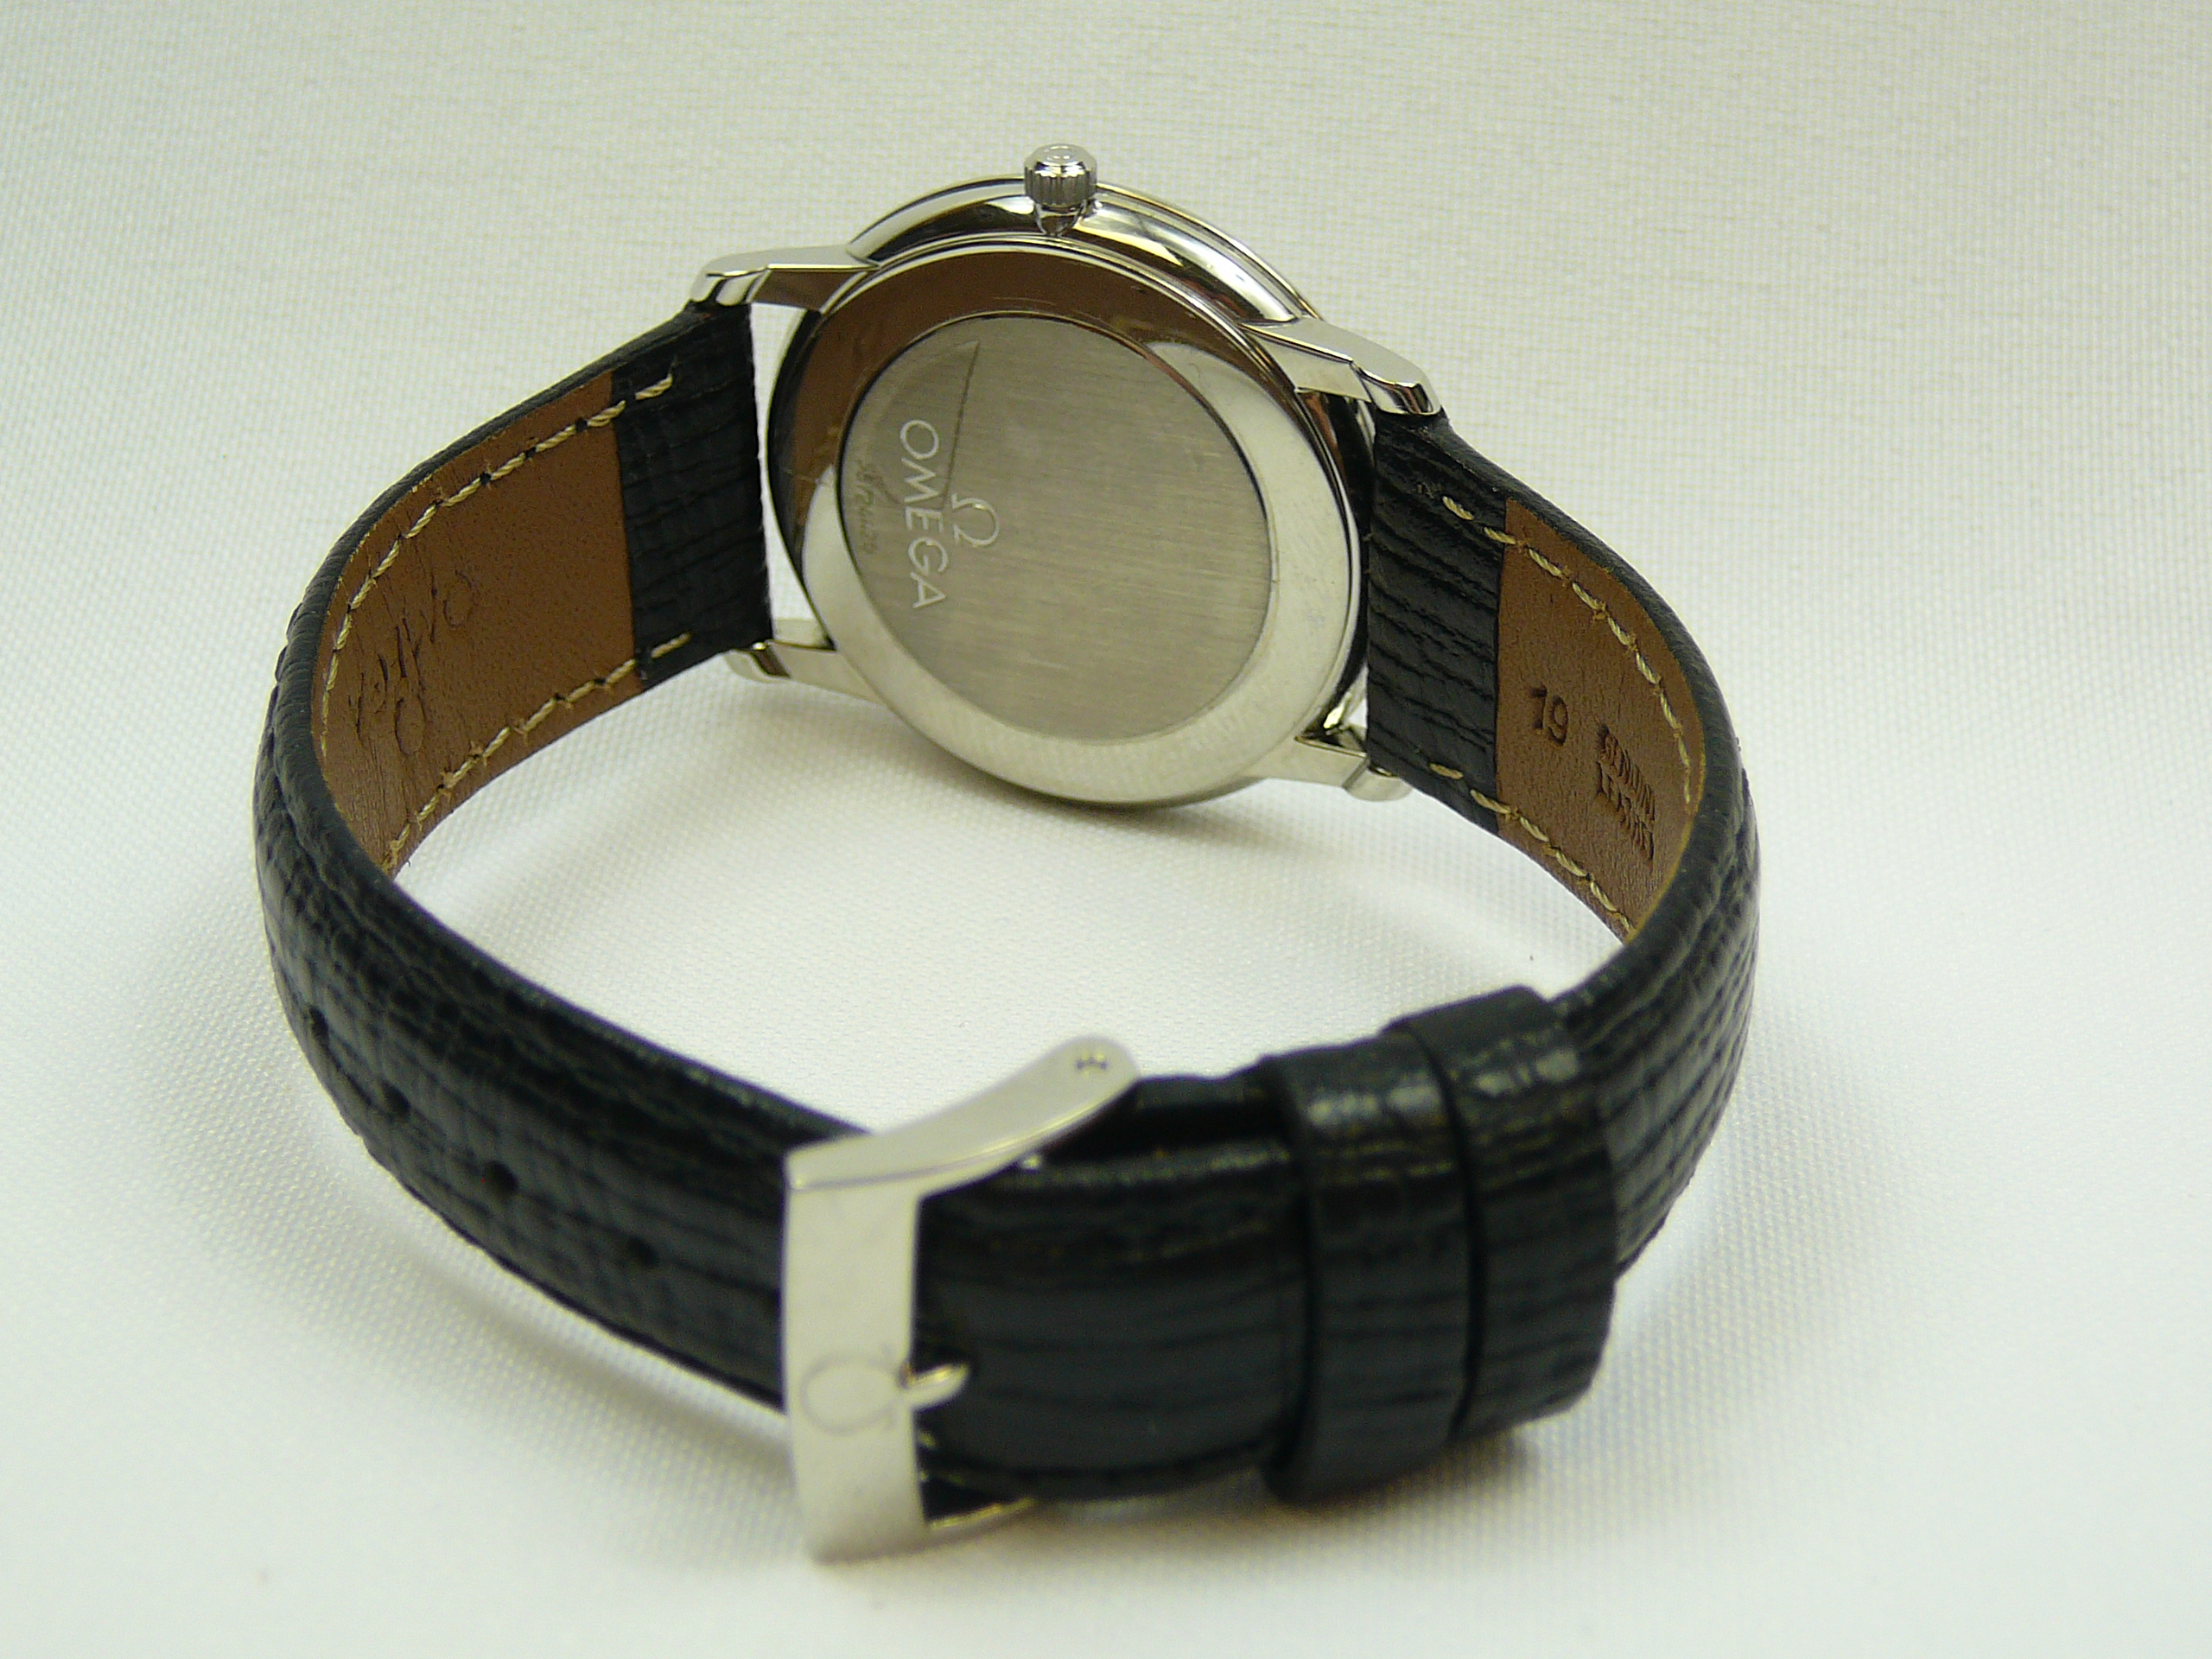 Gents Omega Wrist Watch - Image 3 of 3